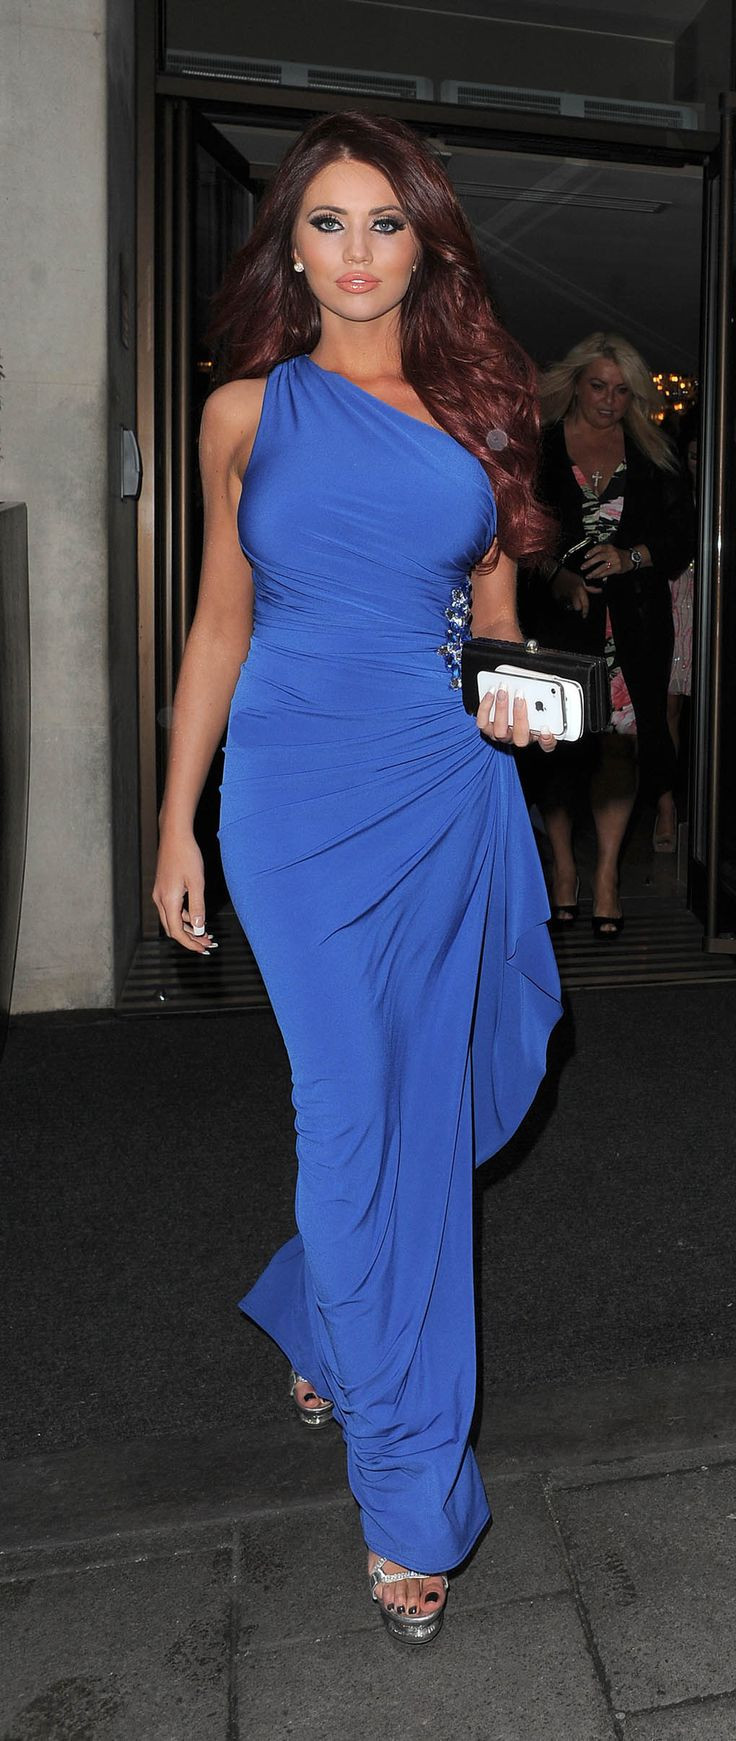 PHOTOS Amy Childs doux profil Shot - Photos Amy Childs....... http://thingswomenwant.com/